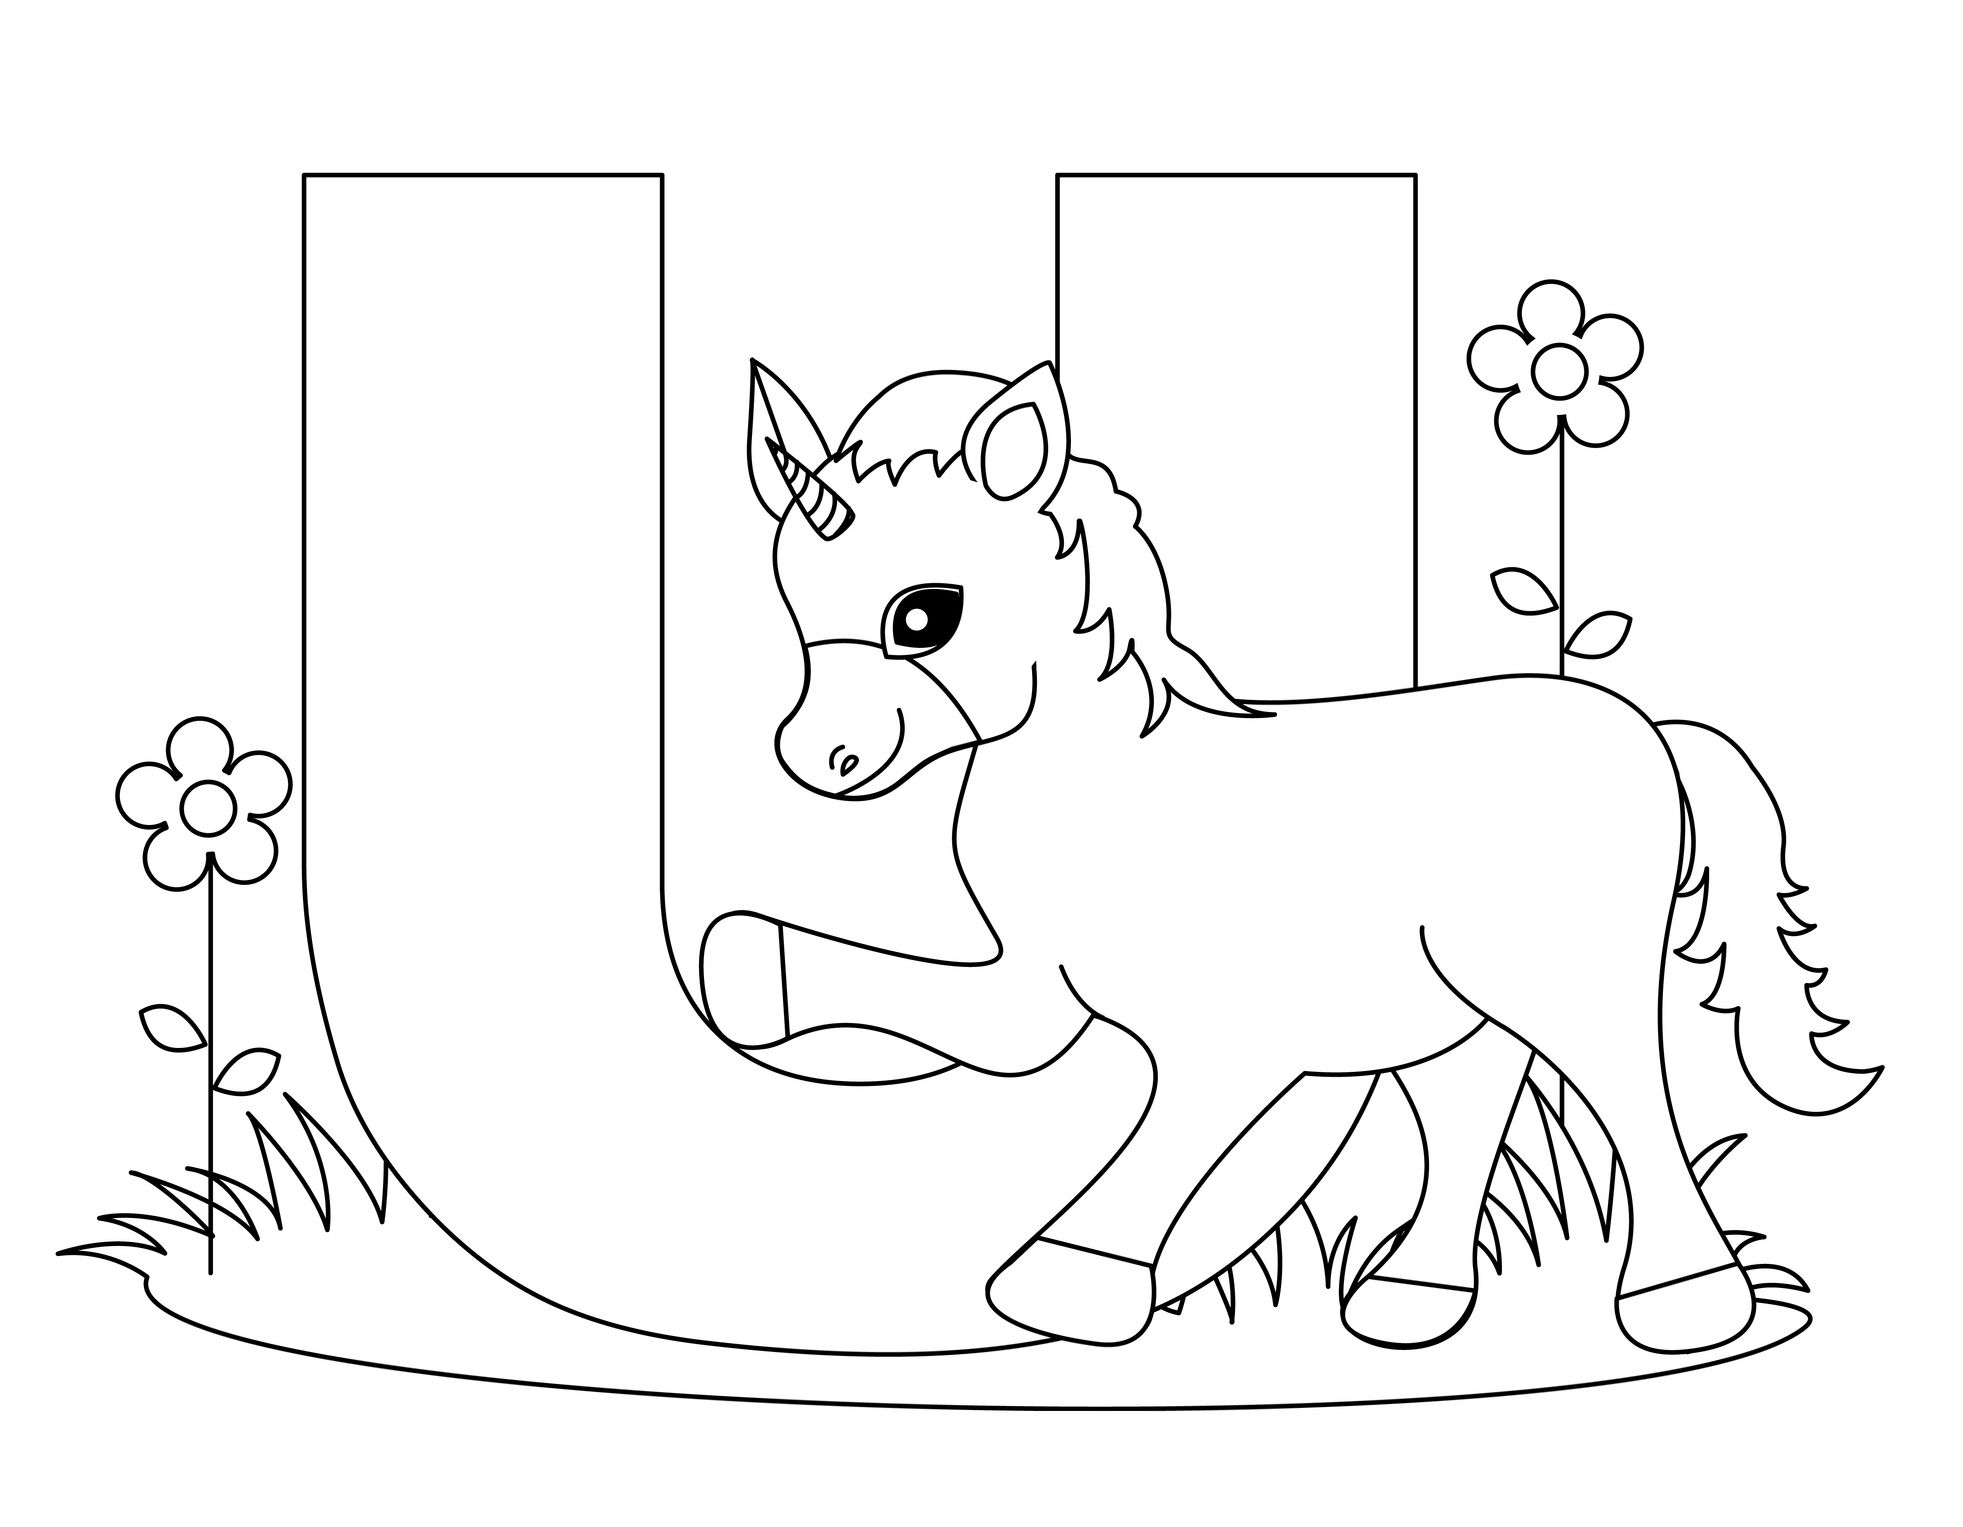 Cool Coloring Pages Of The Alphabet Free Download  Sznezk